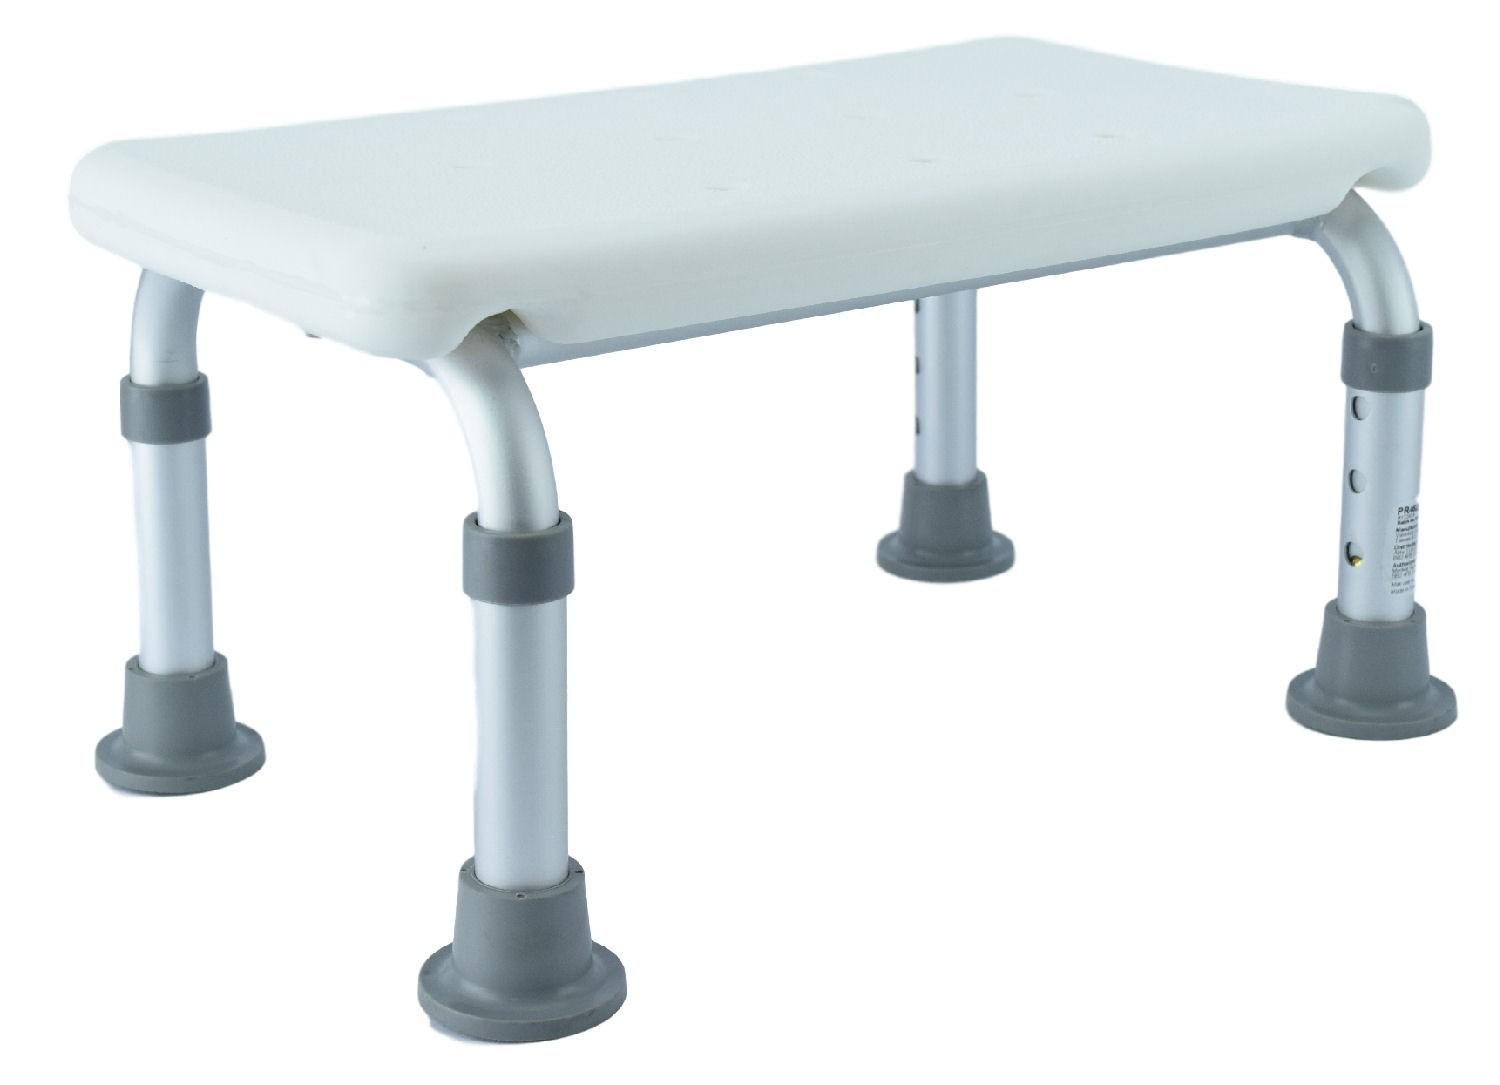 Bath Stool Step Shower Stools Benches Seats